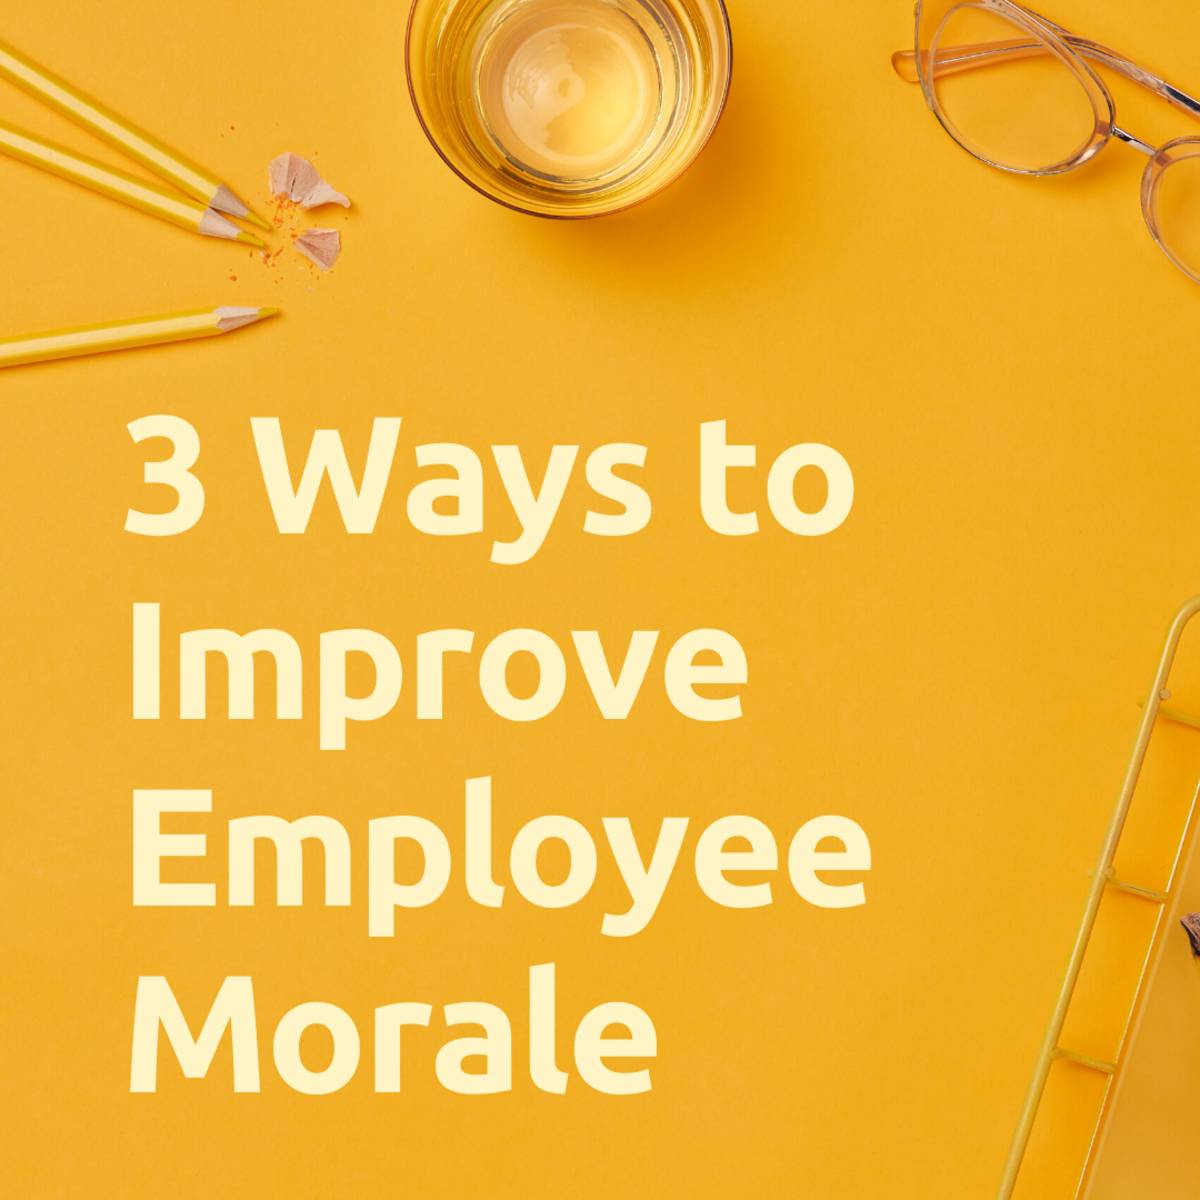 How to Increase Employee Morale in 3 Easy Steps